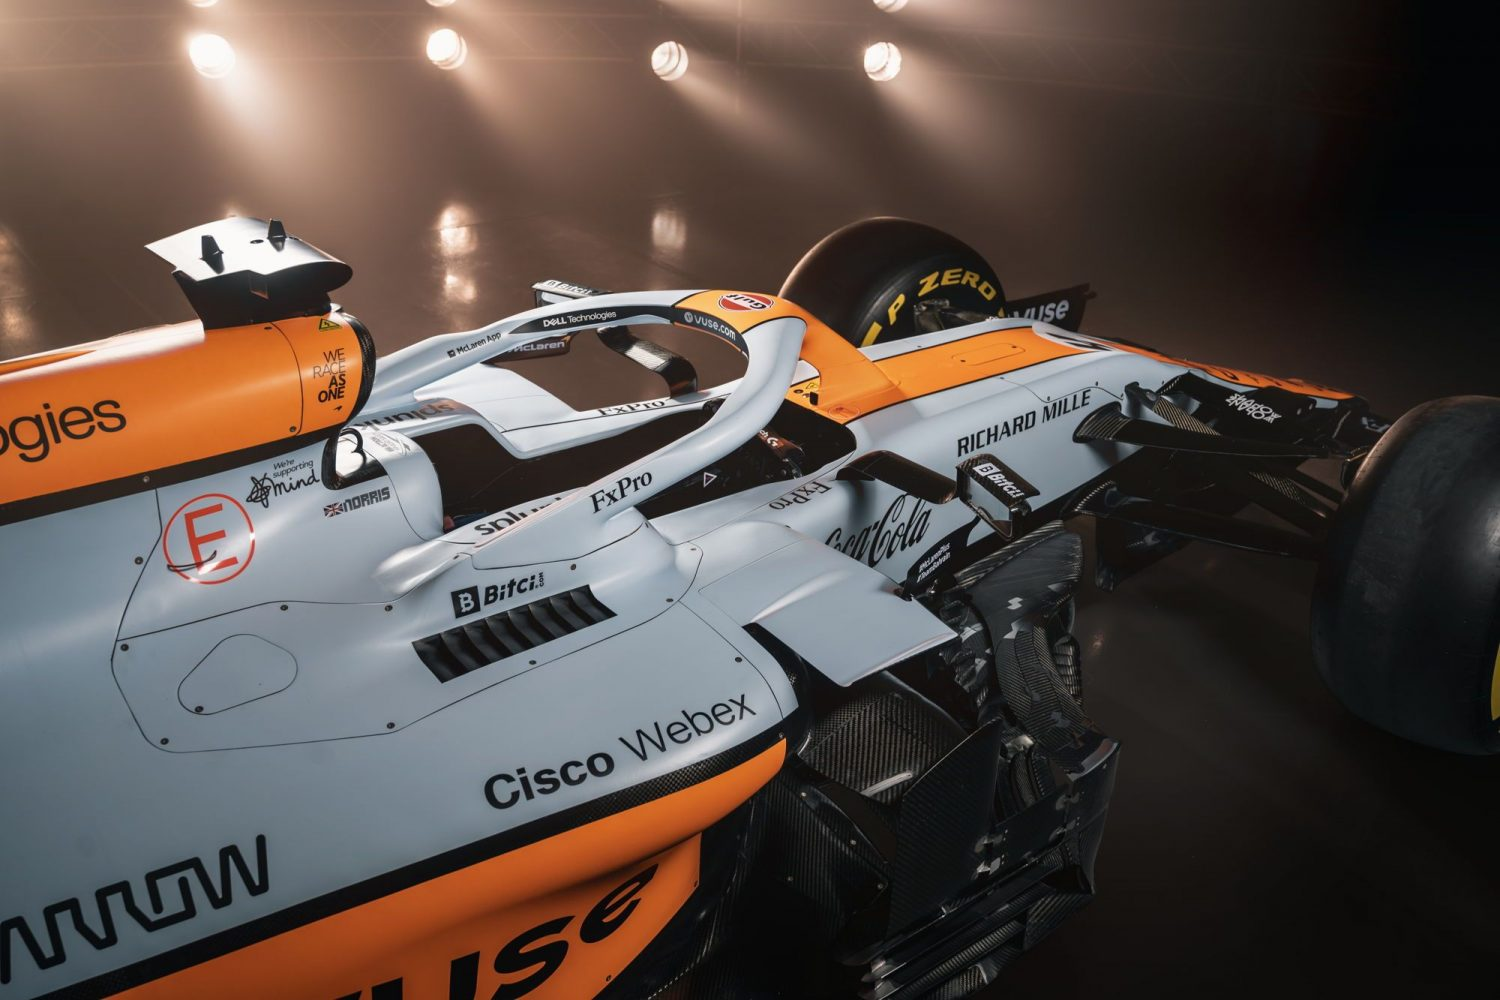 McLaren drivers all for NASCAR-like throwback weekend in F1